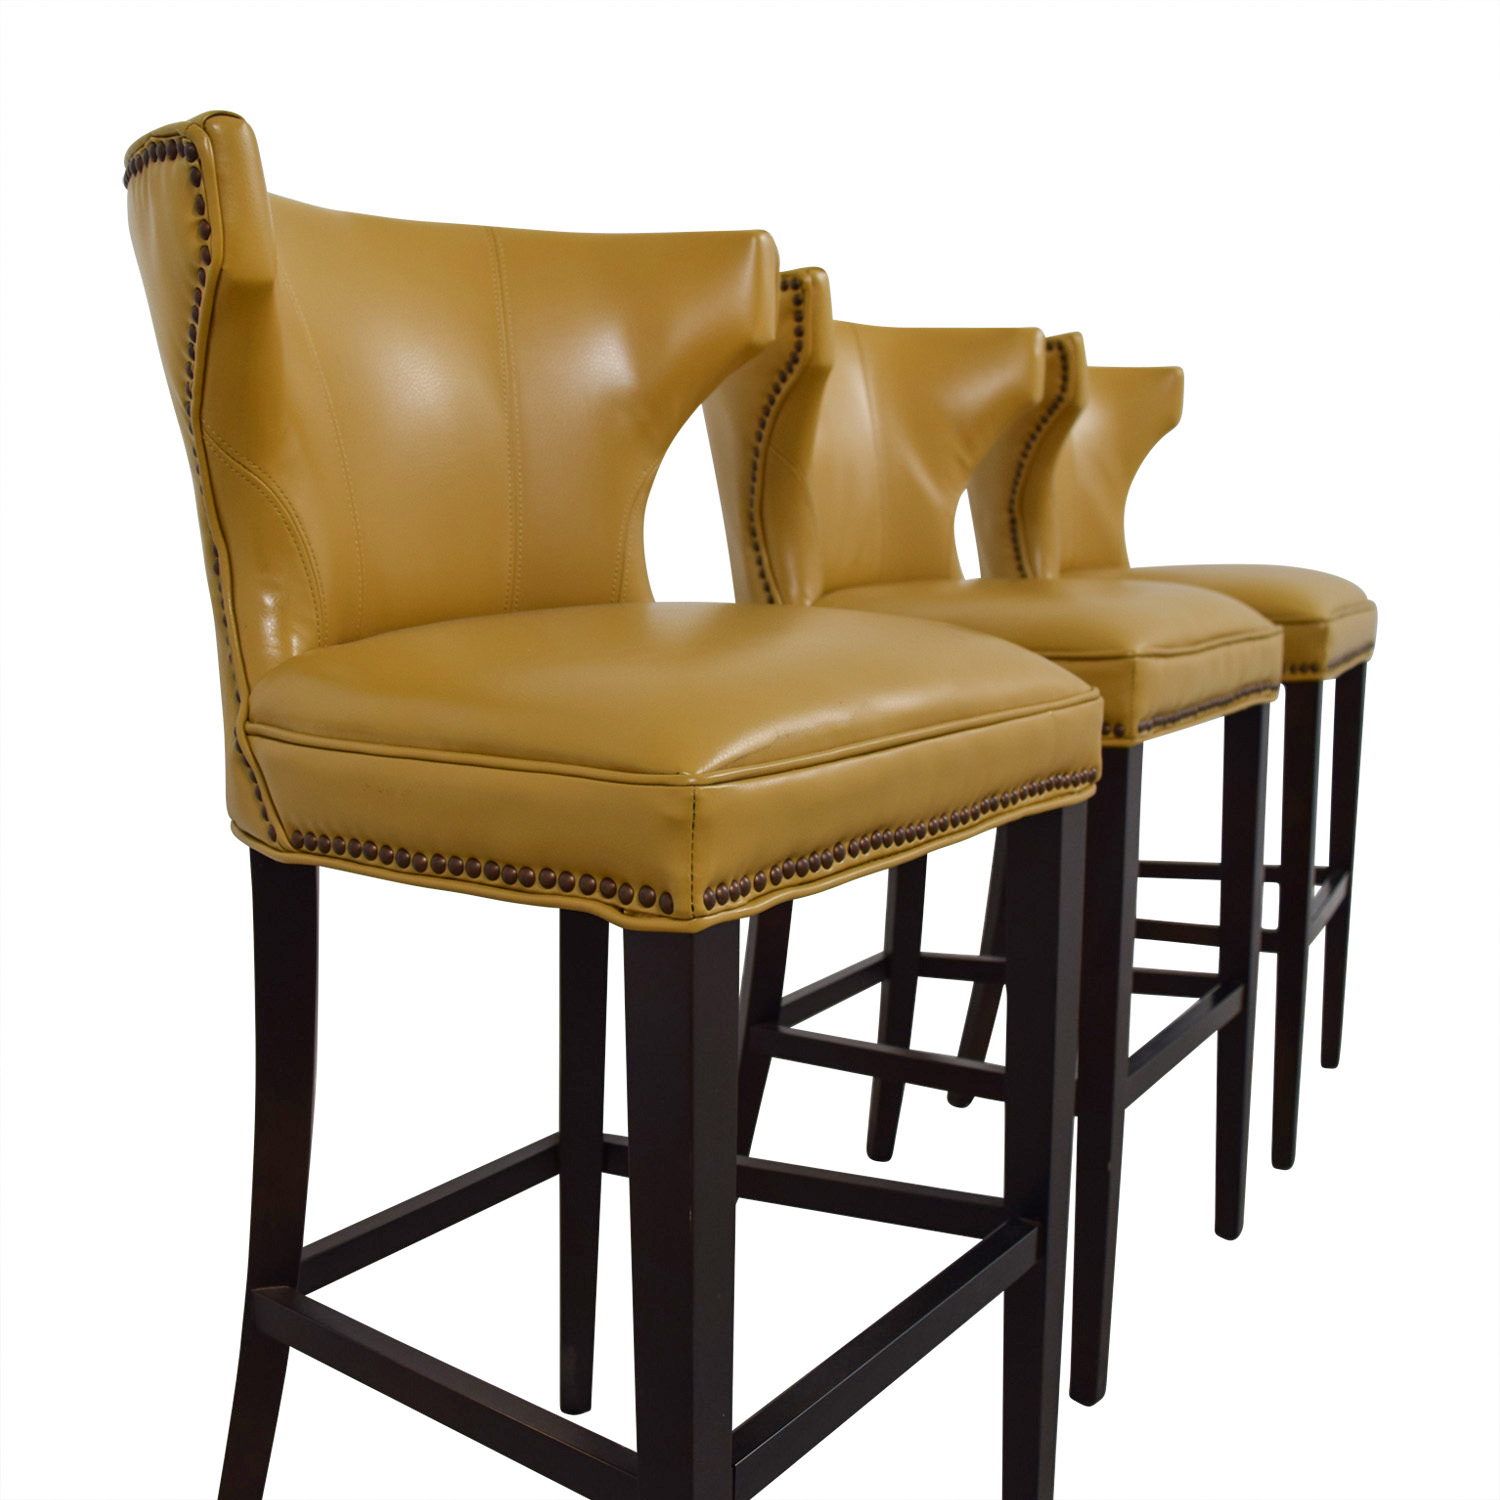 72% Off - Grandin Road Grandin Road Mustard Yellow Bar Stools / Chairs regarding Grandin Leather Sofa Chairs